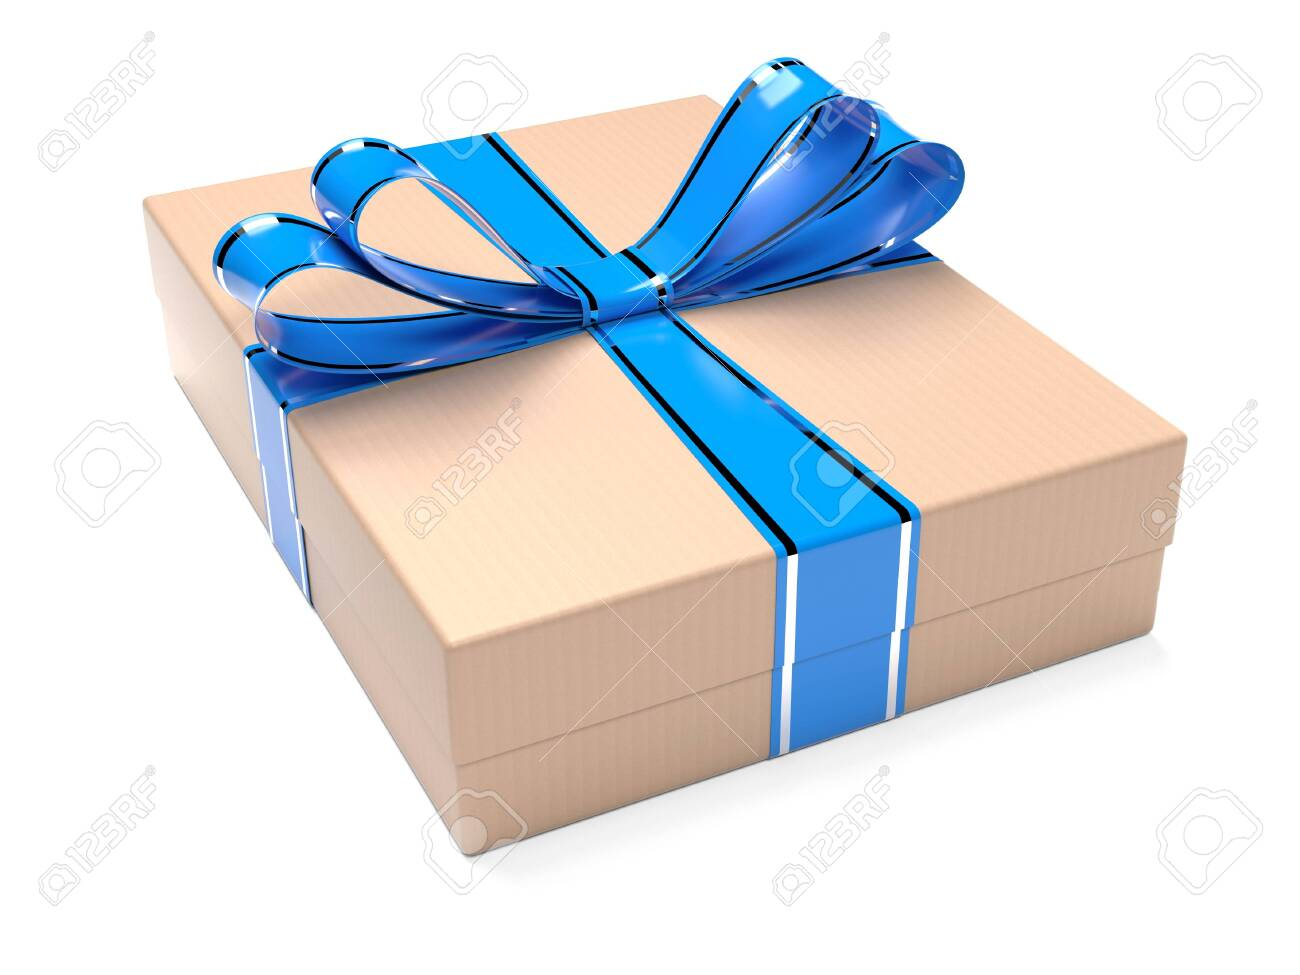 Gift box decorated with blue ribbon. Brown carton. 3d rendering illustration isolated on white background - 150521162